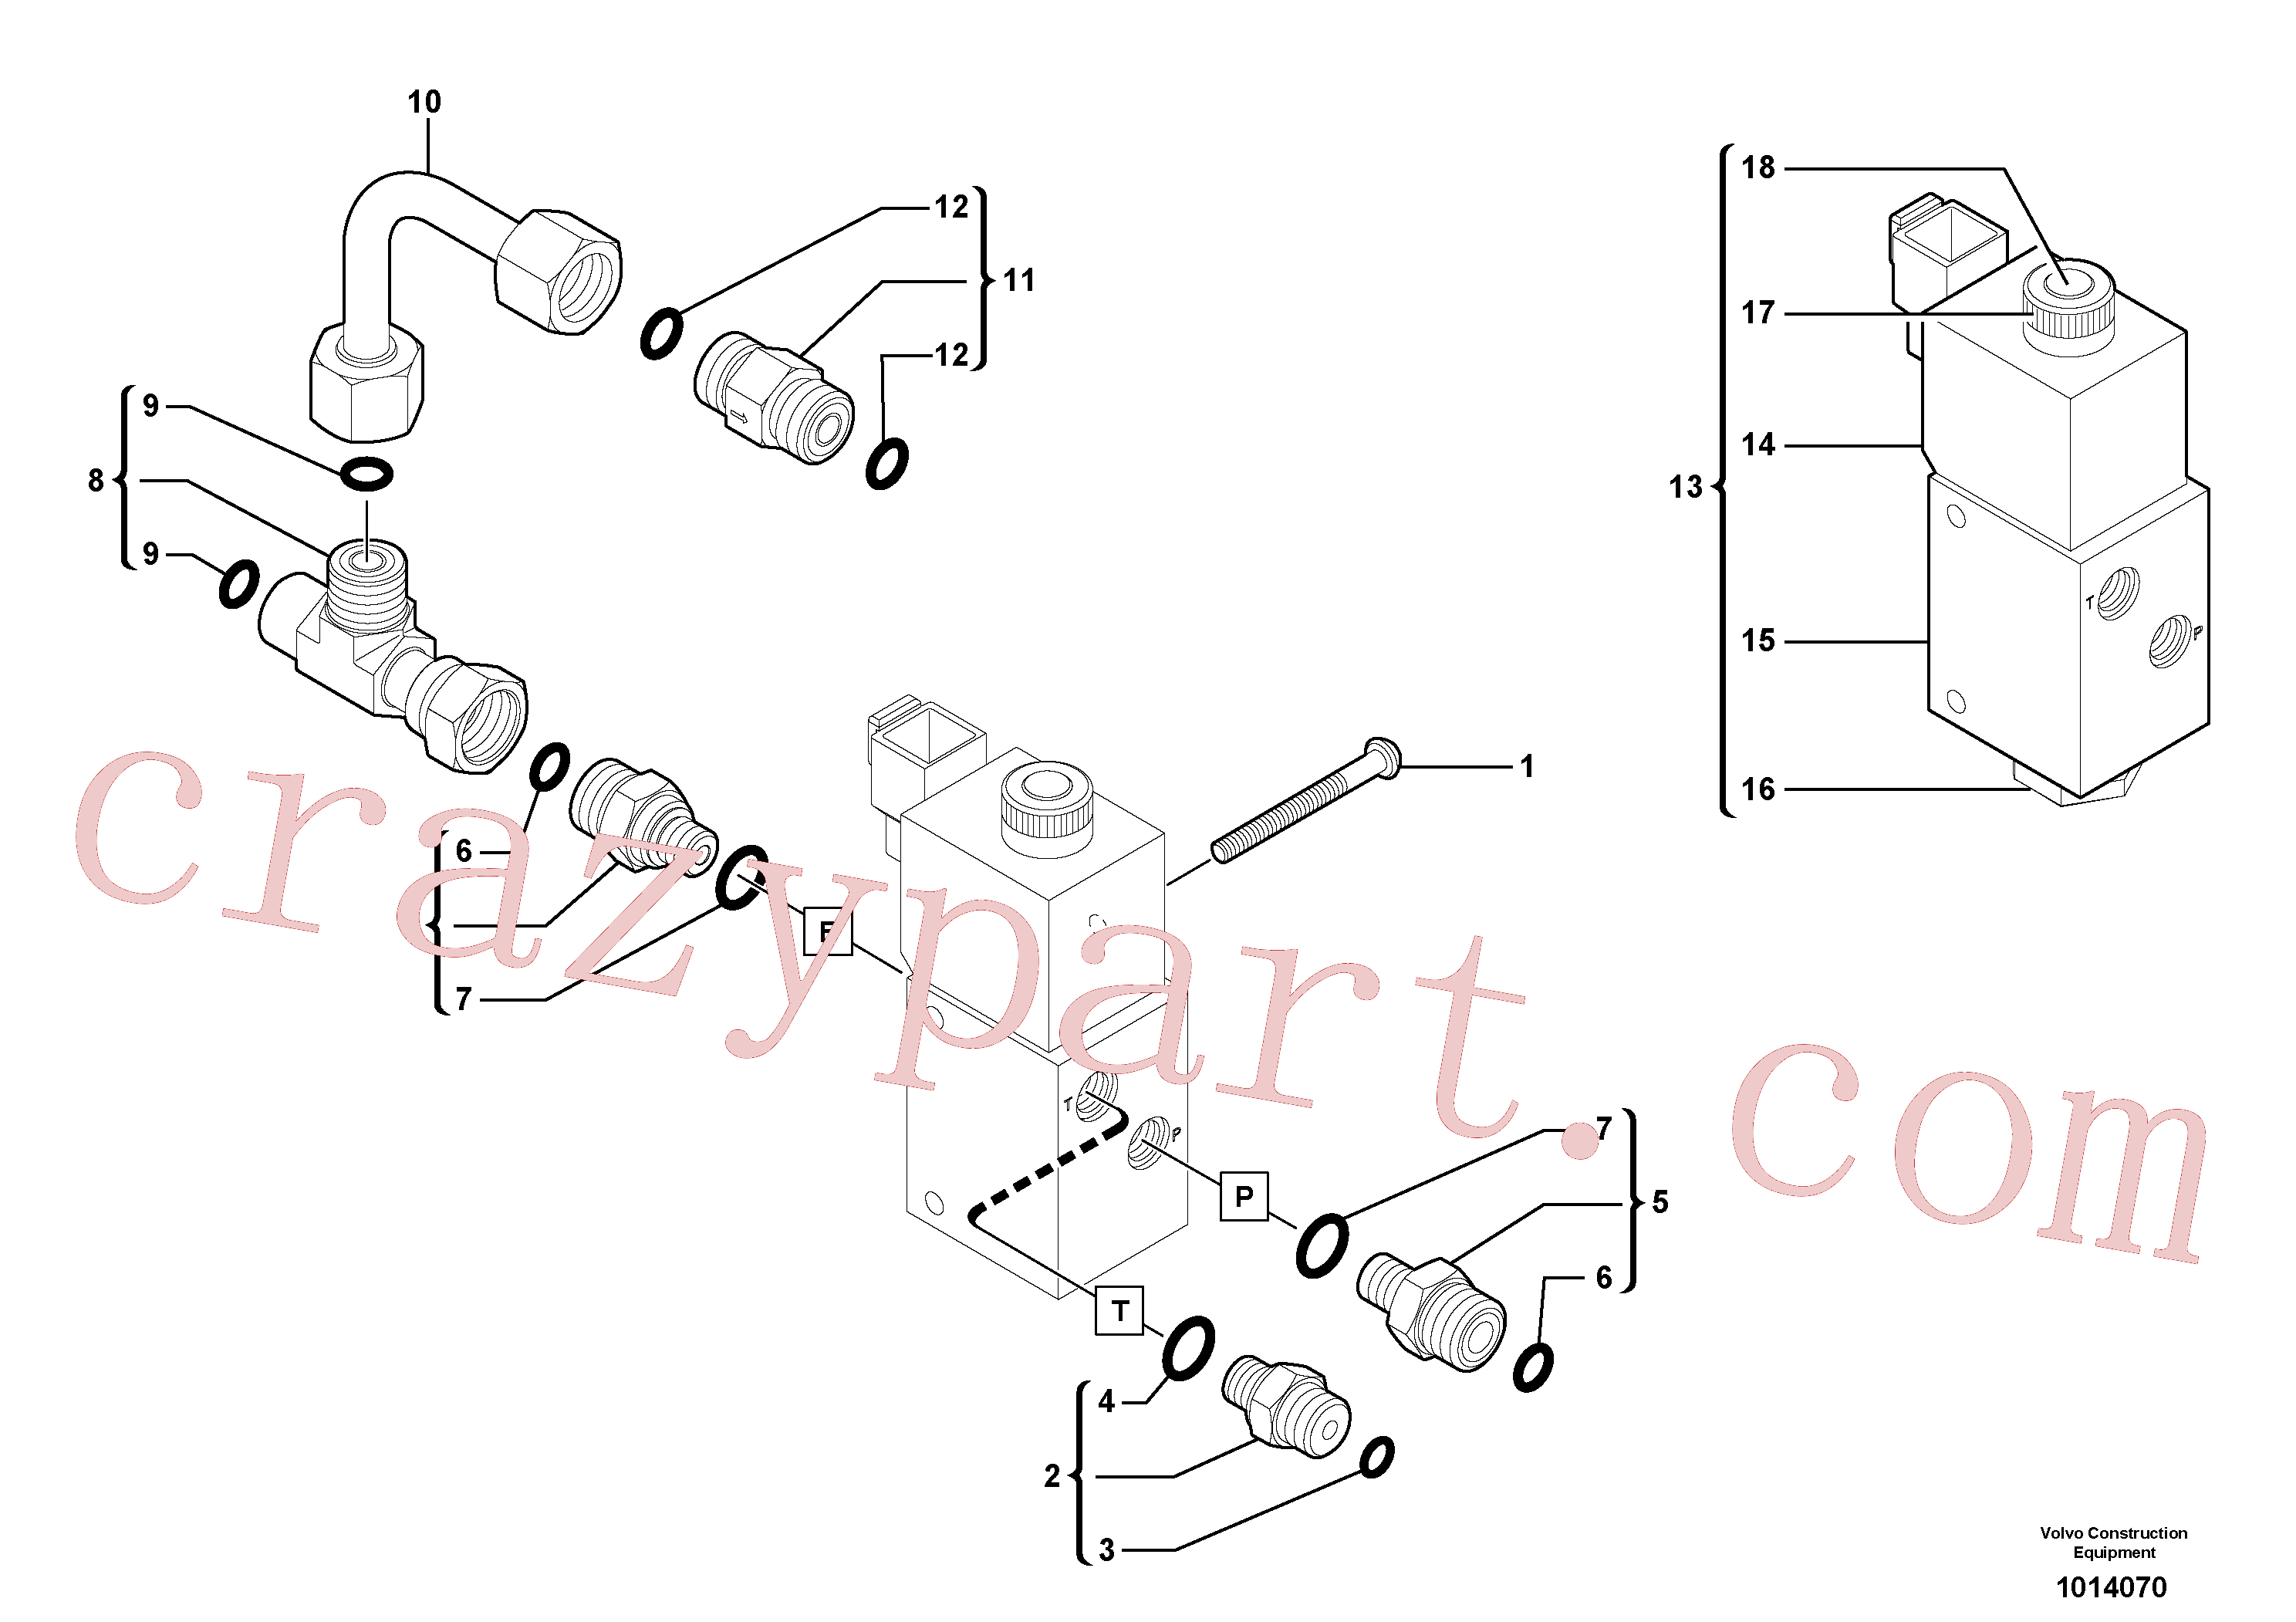 VOE11713204 for Volvo Electrovalve installation(1014070 assembly)